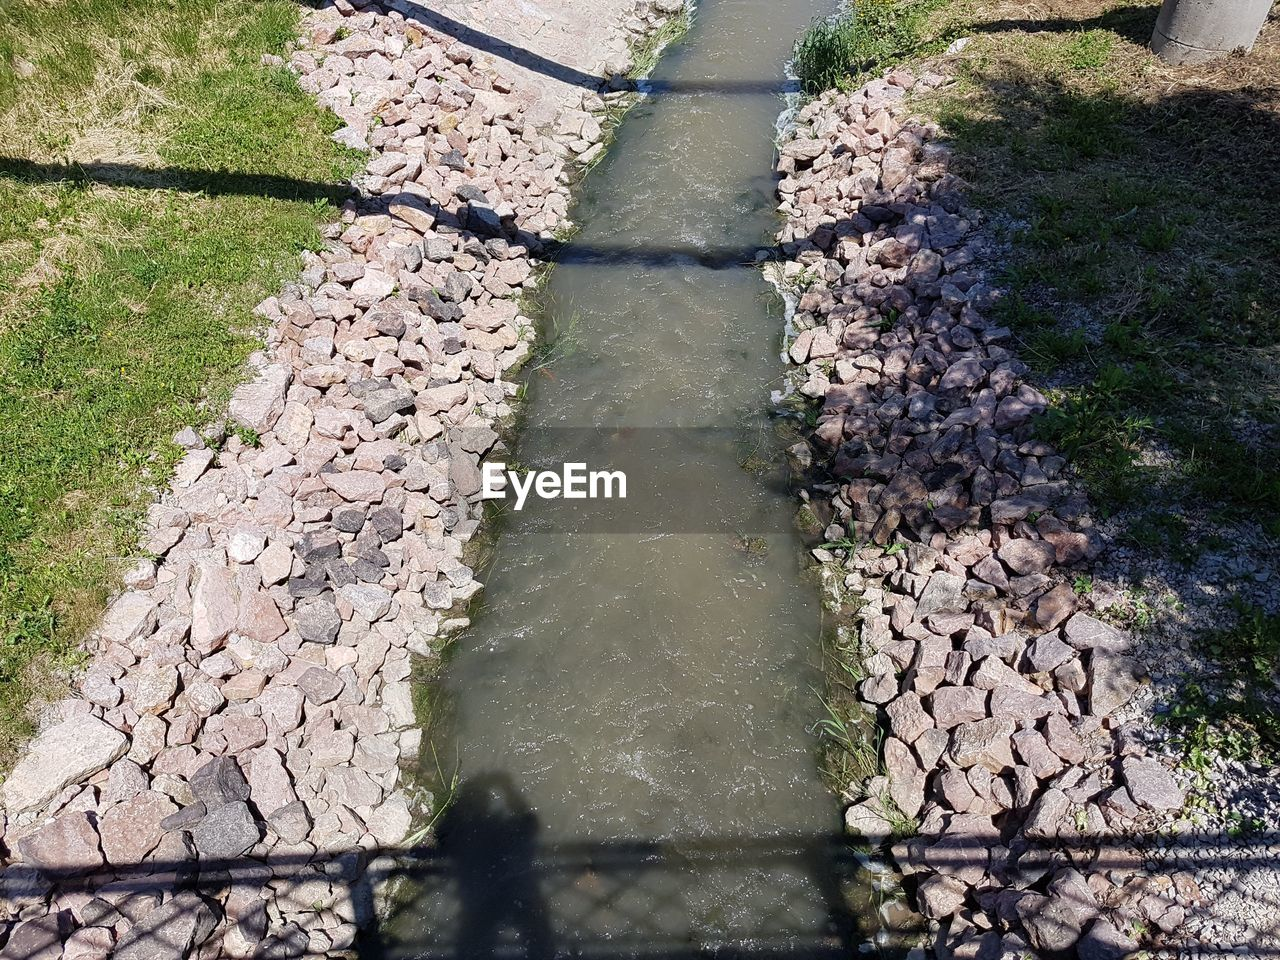 water, day, gutter, high angle view, sewage, outdoors, no people, reflection, sewer, nature, puddle, tree